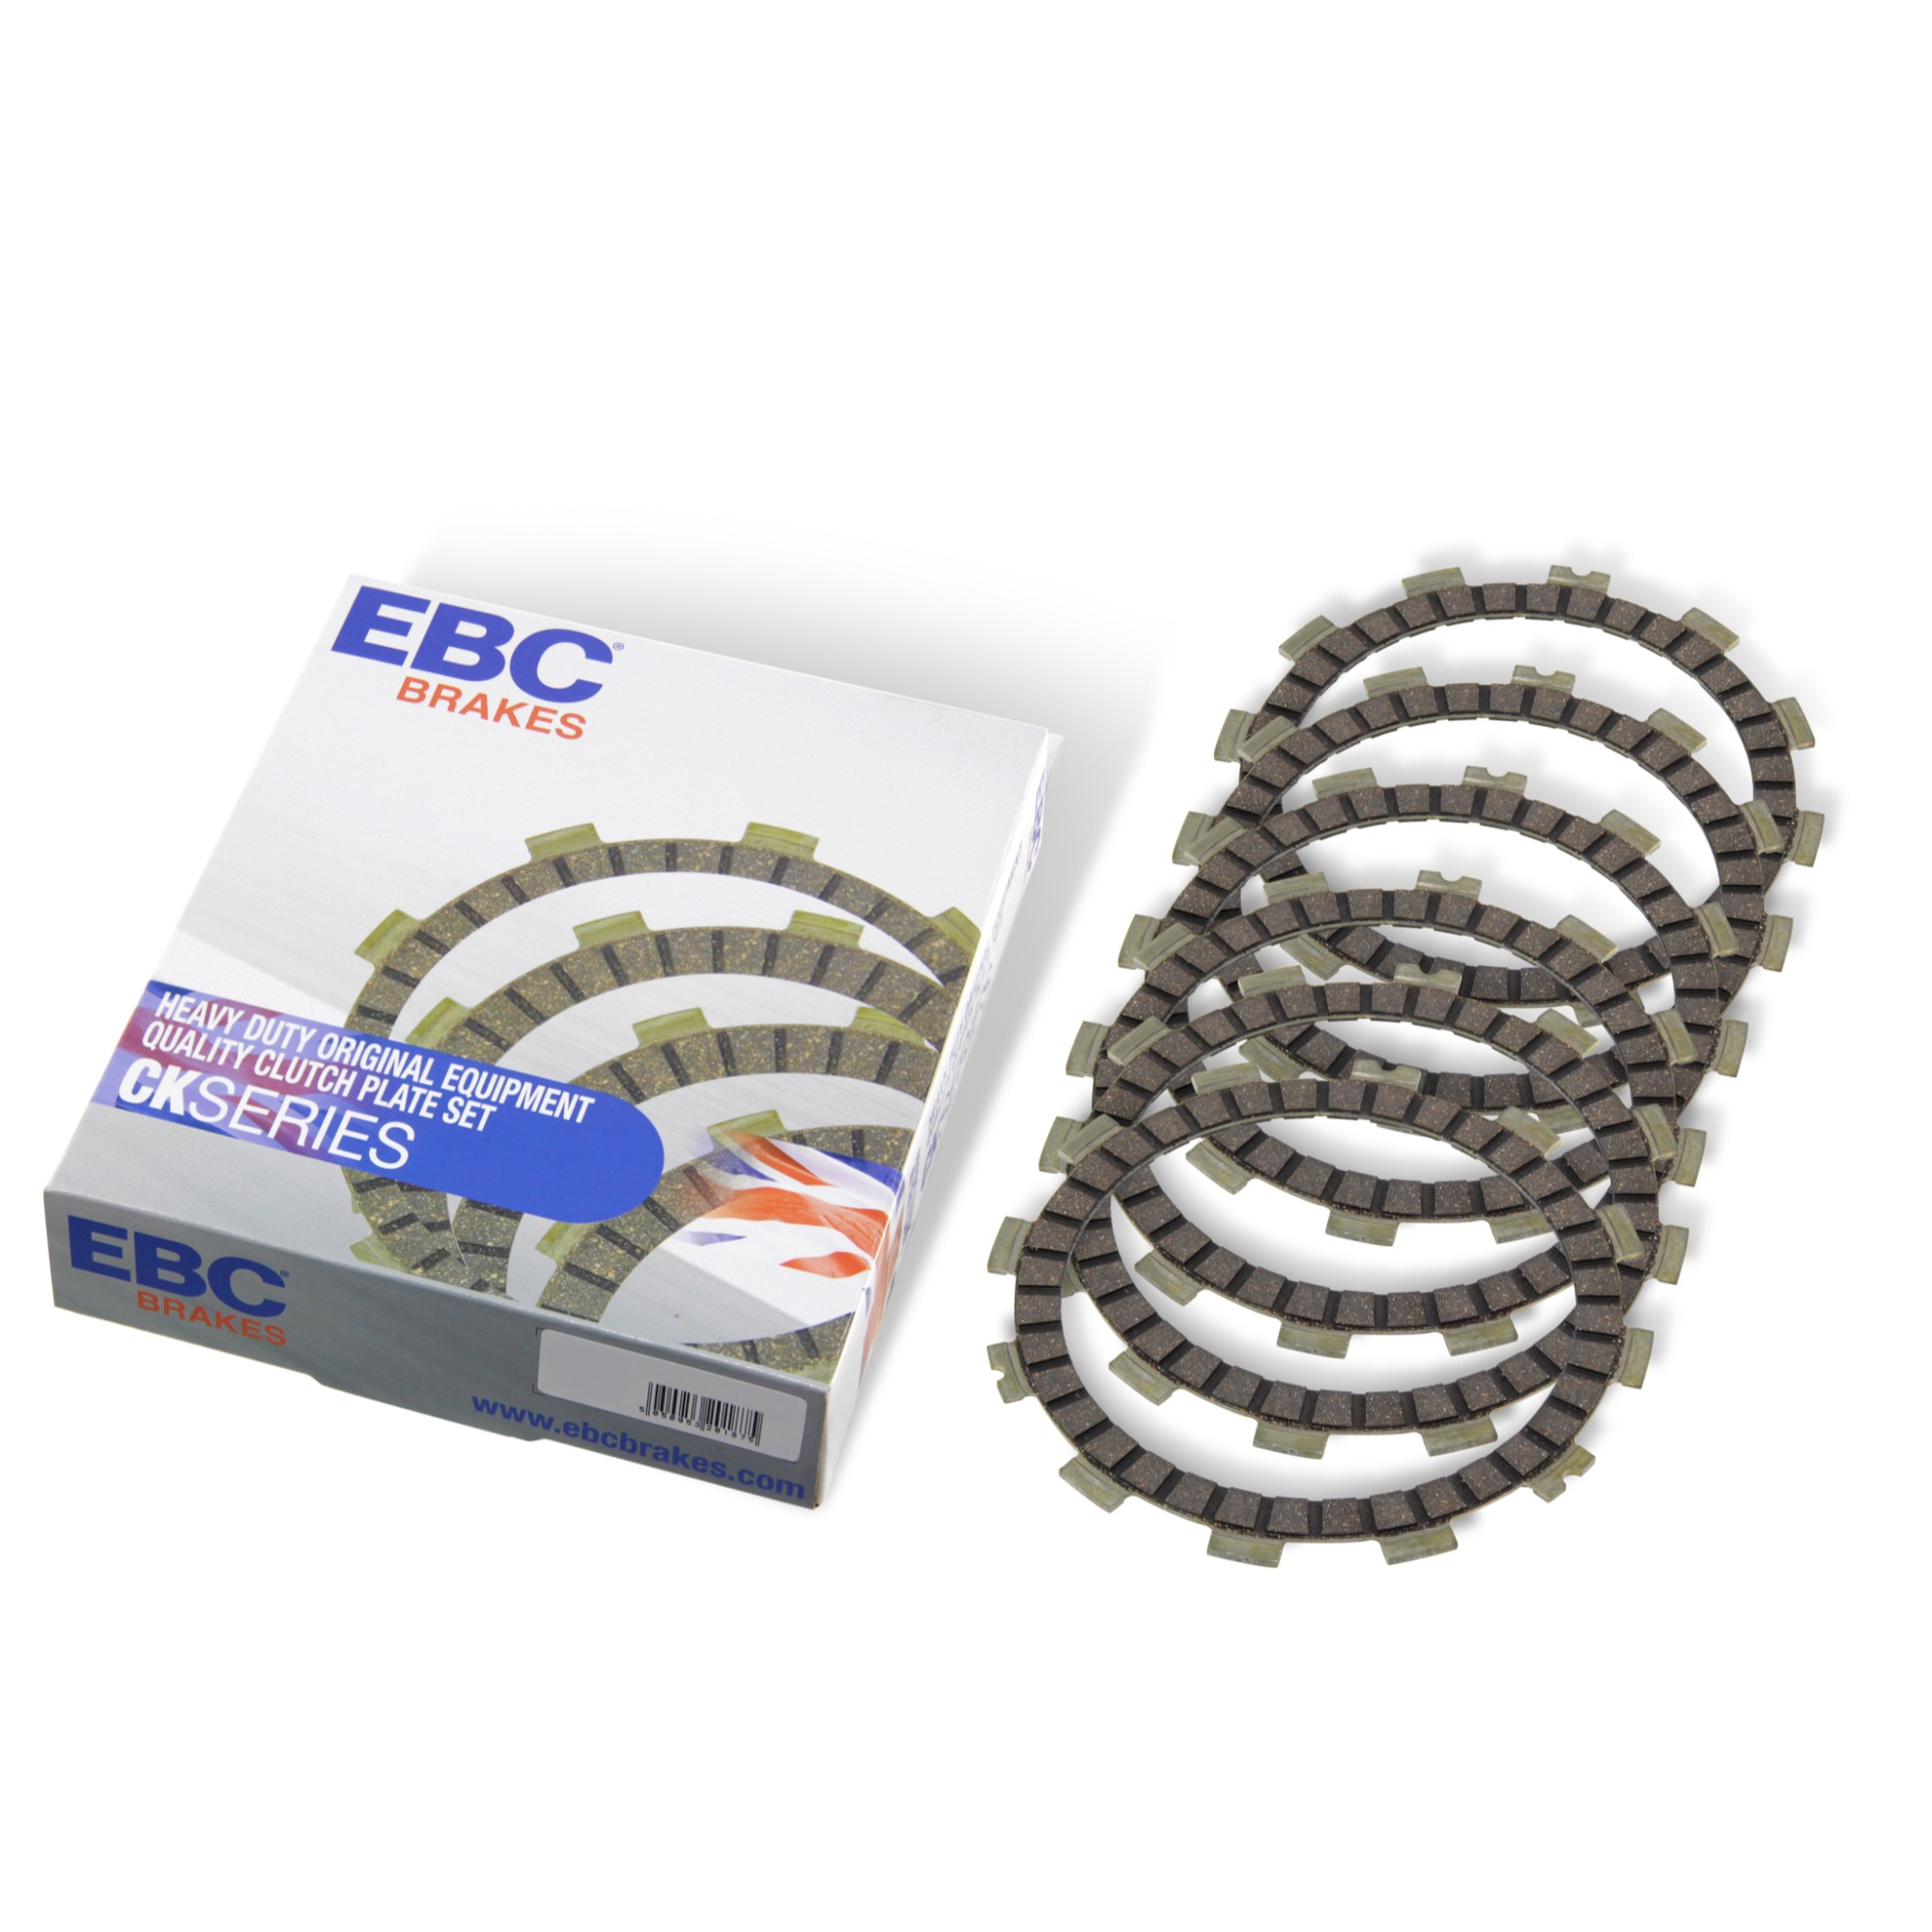 EBC Replacement Clutch Springs For Suzuki 2000 GSF600N Bandit Y